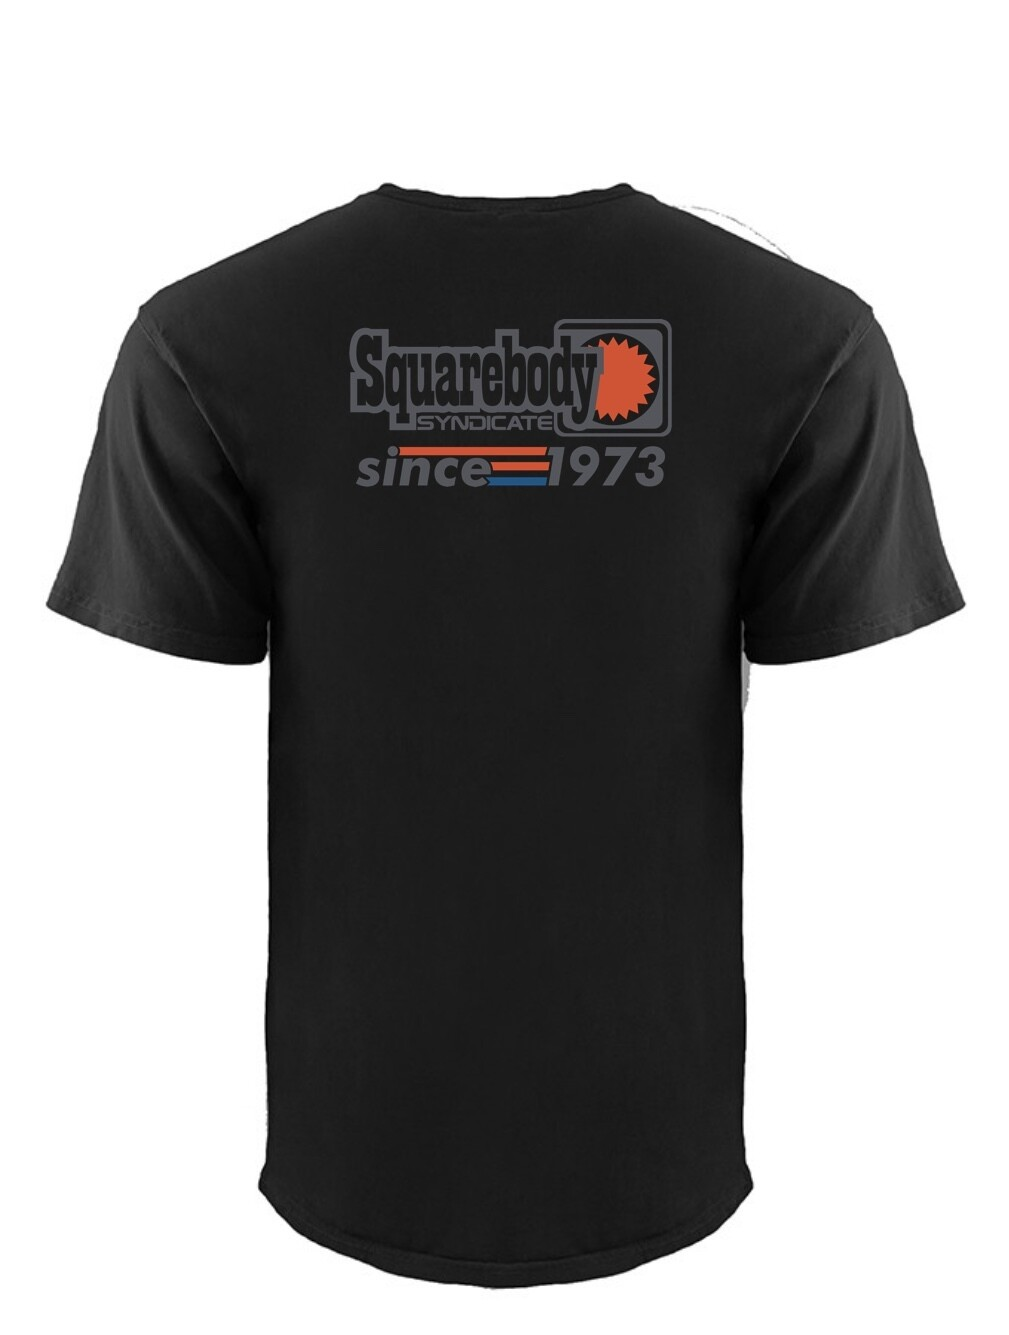 NEW Since 1973 BLACK SHIRT